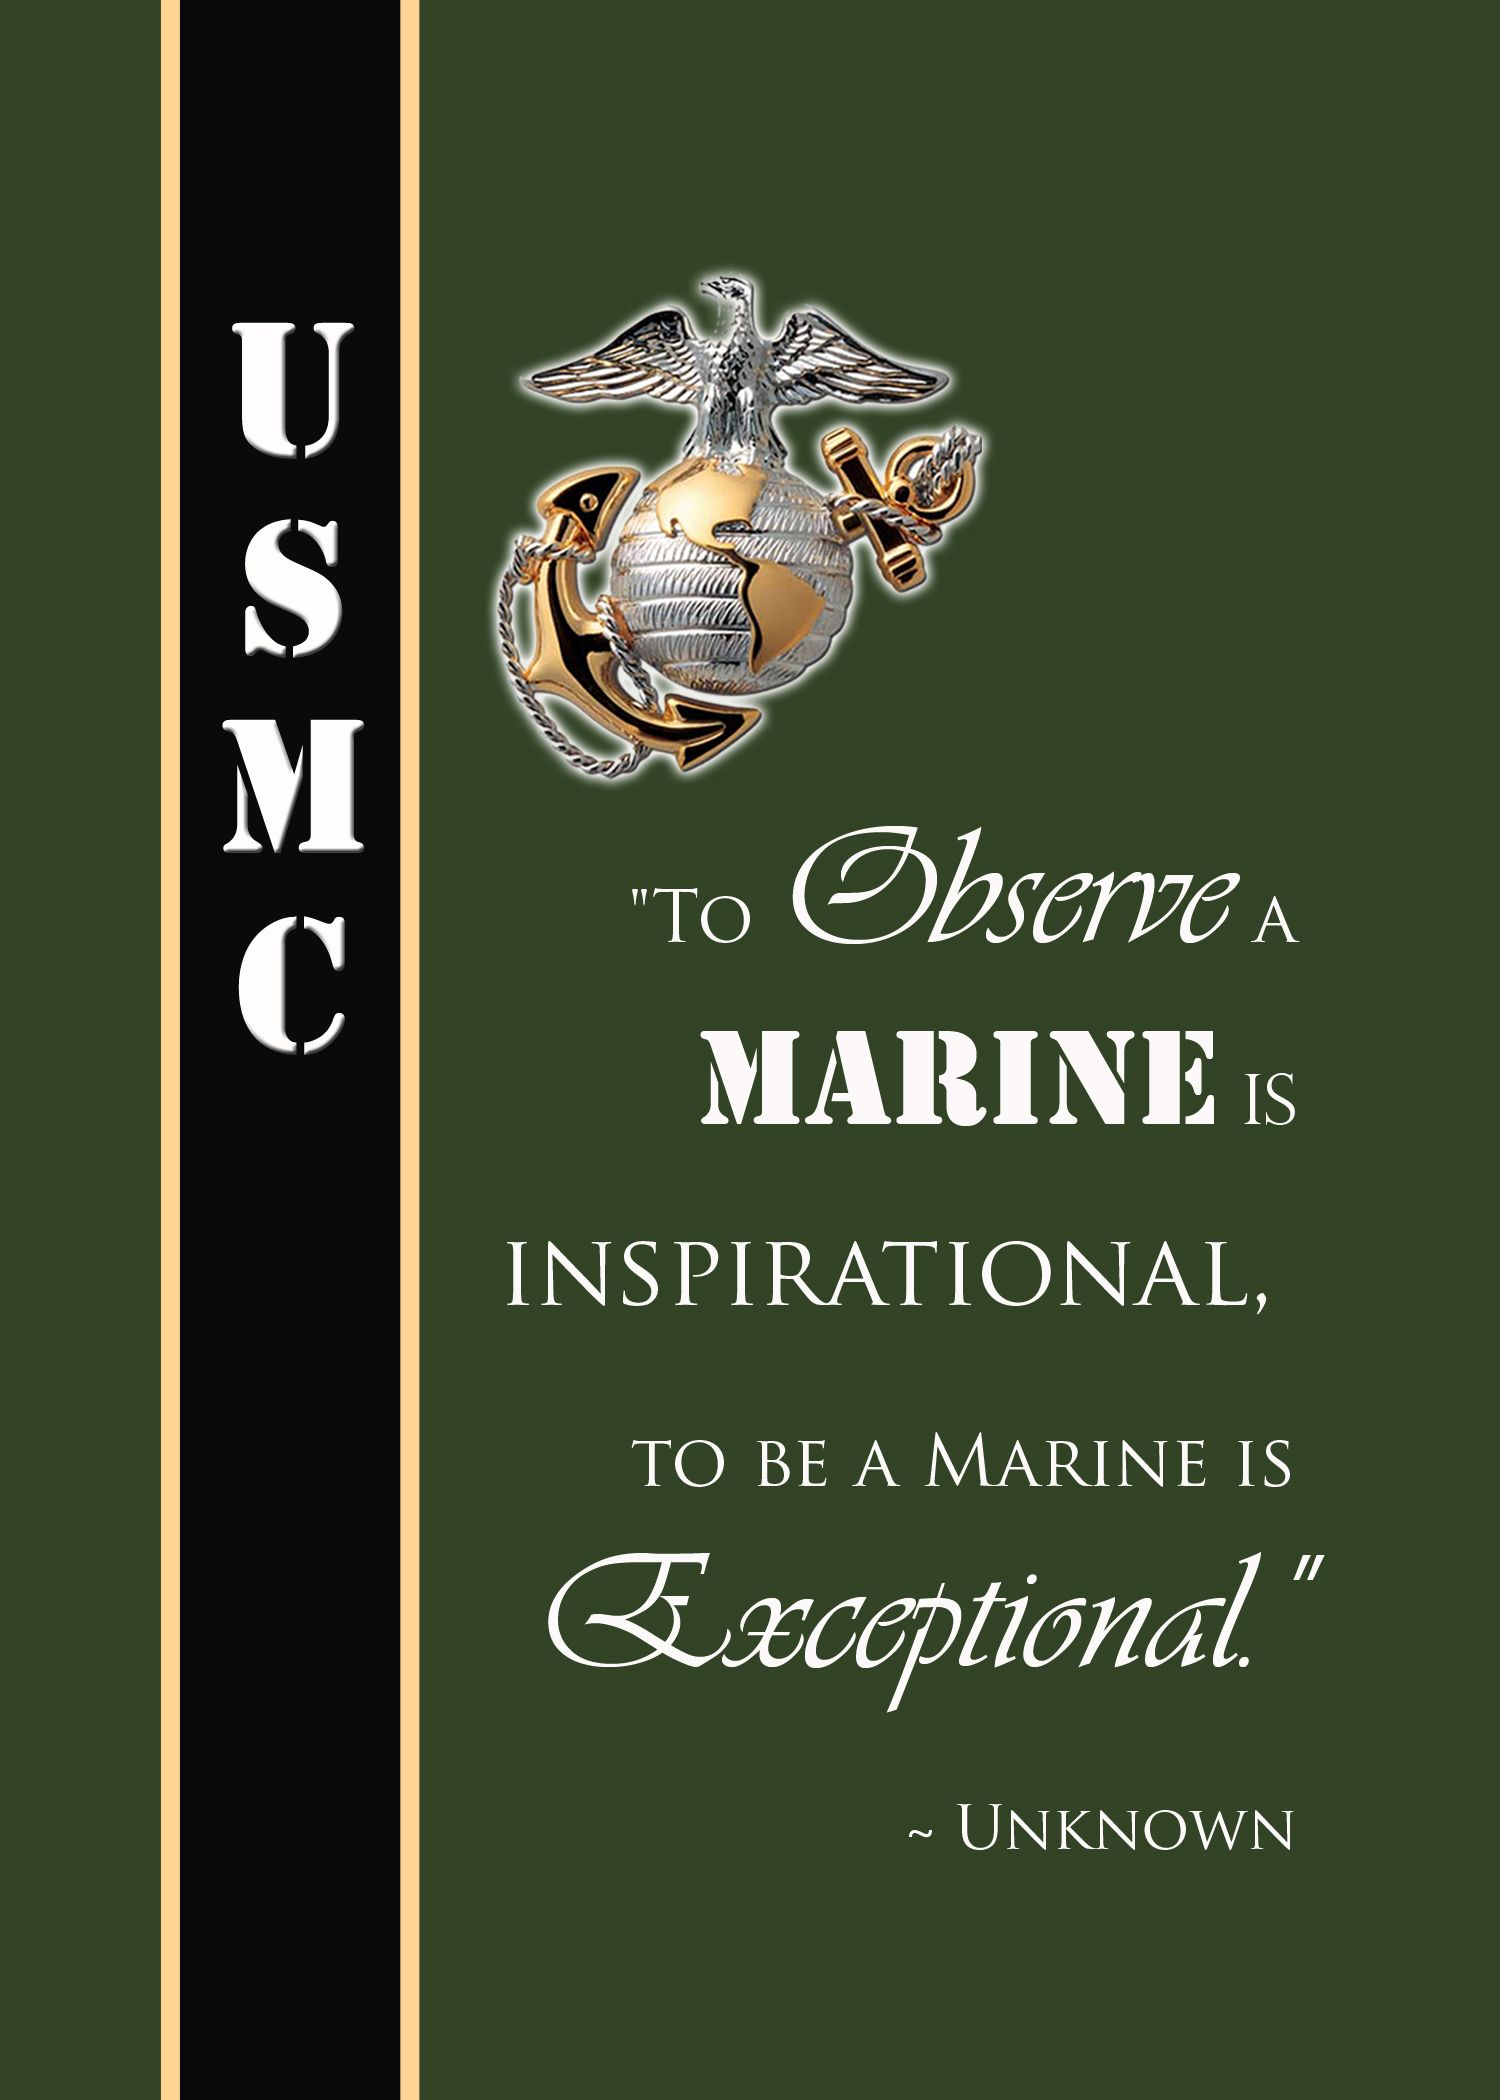 Famous Marine Corps Quotes Famous Marine Quoteto Observe A Marine Is Inspirational To Be A